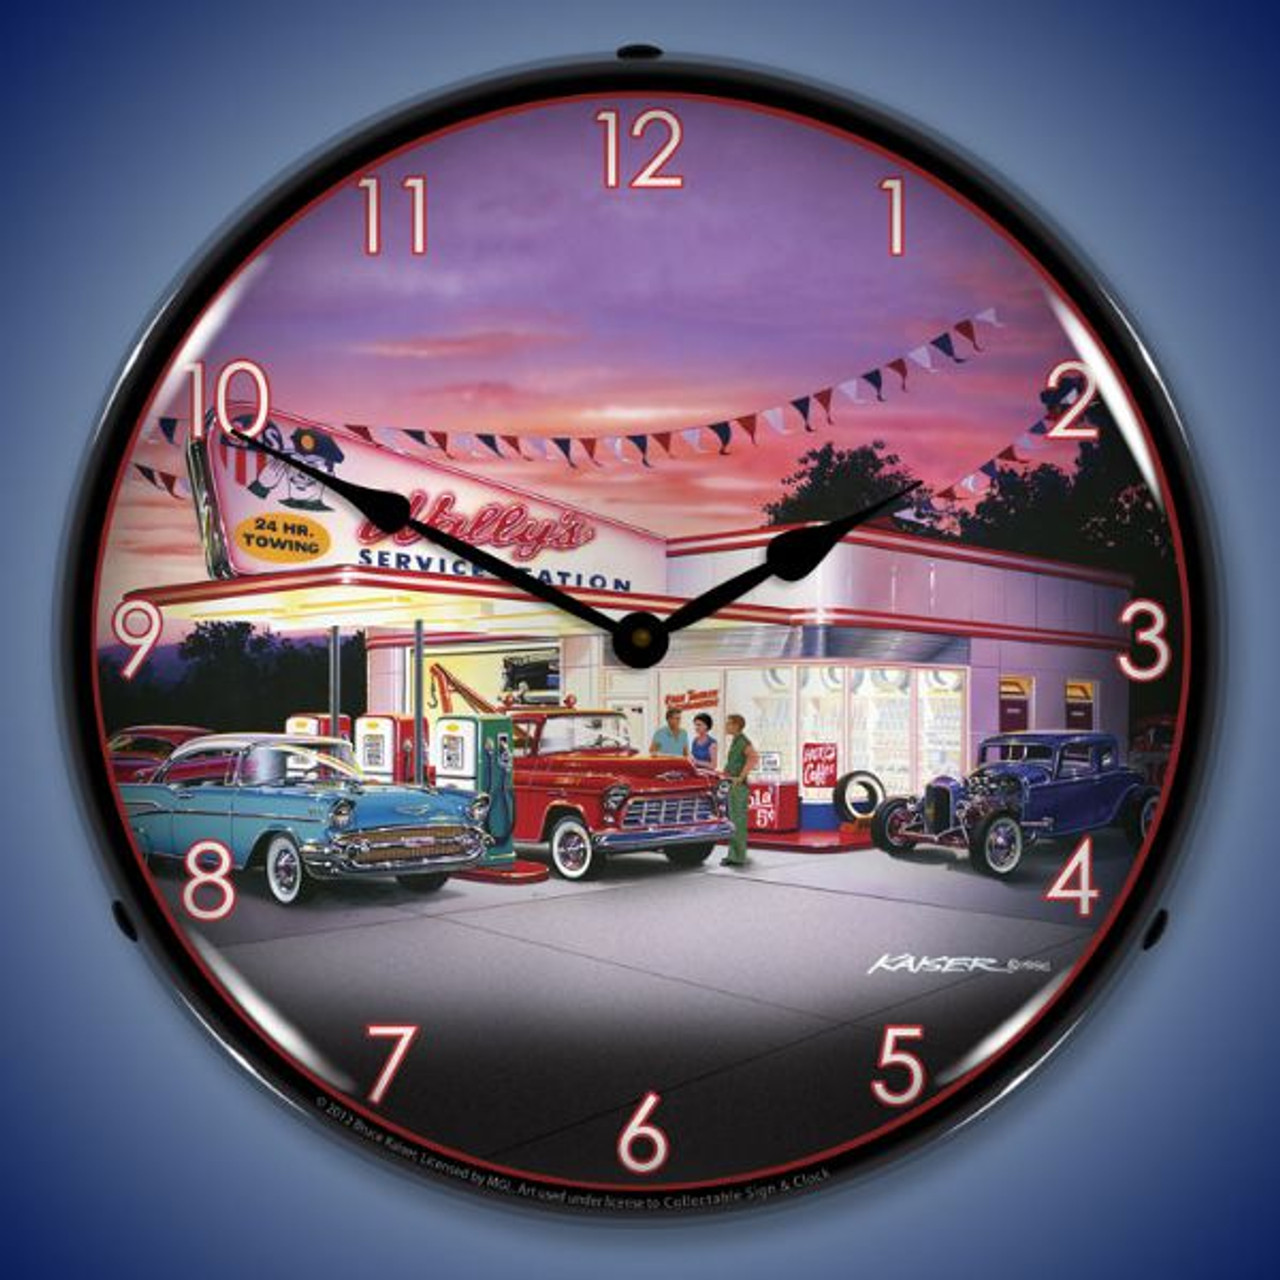 Retro Wallys Service Station Lighted Wall Clock 14 x 14 Inches